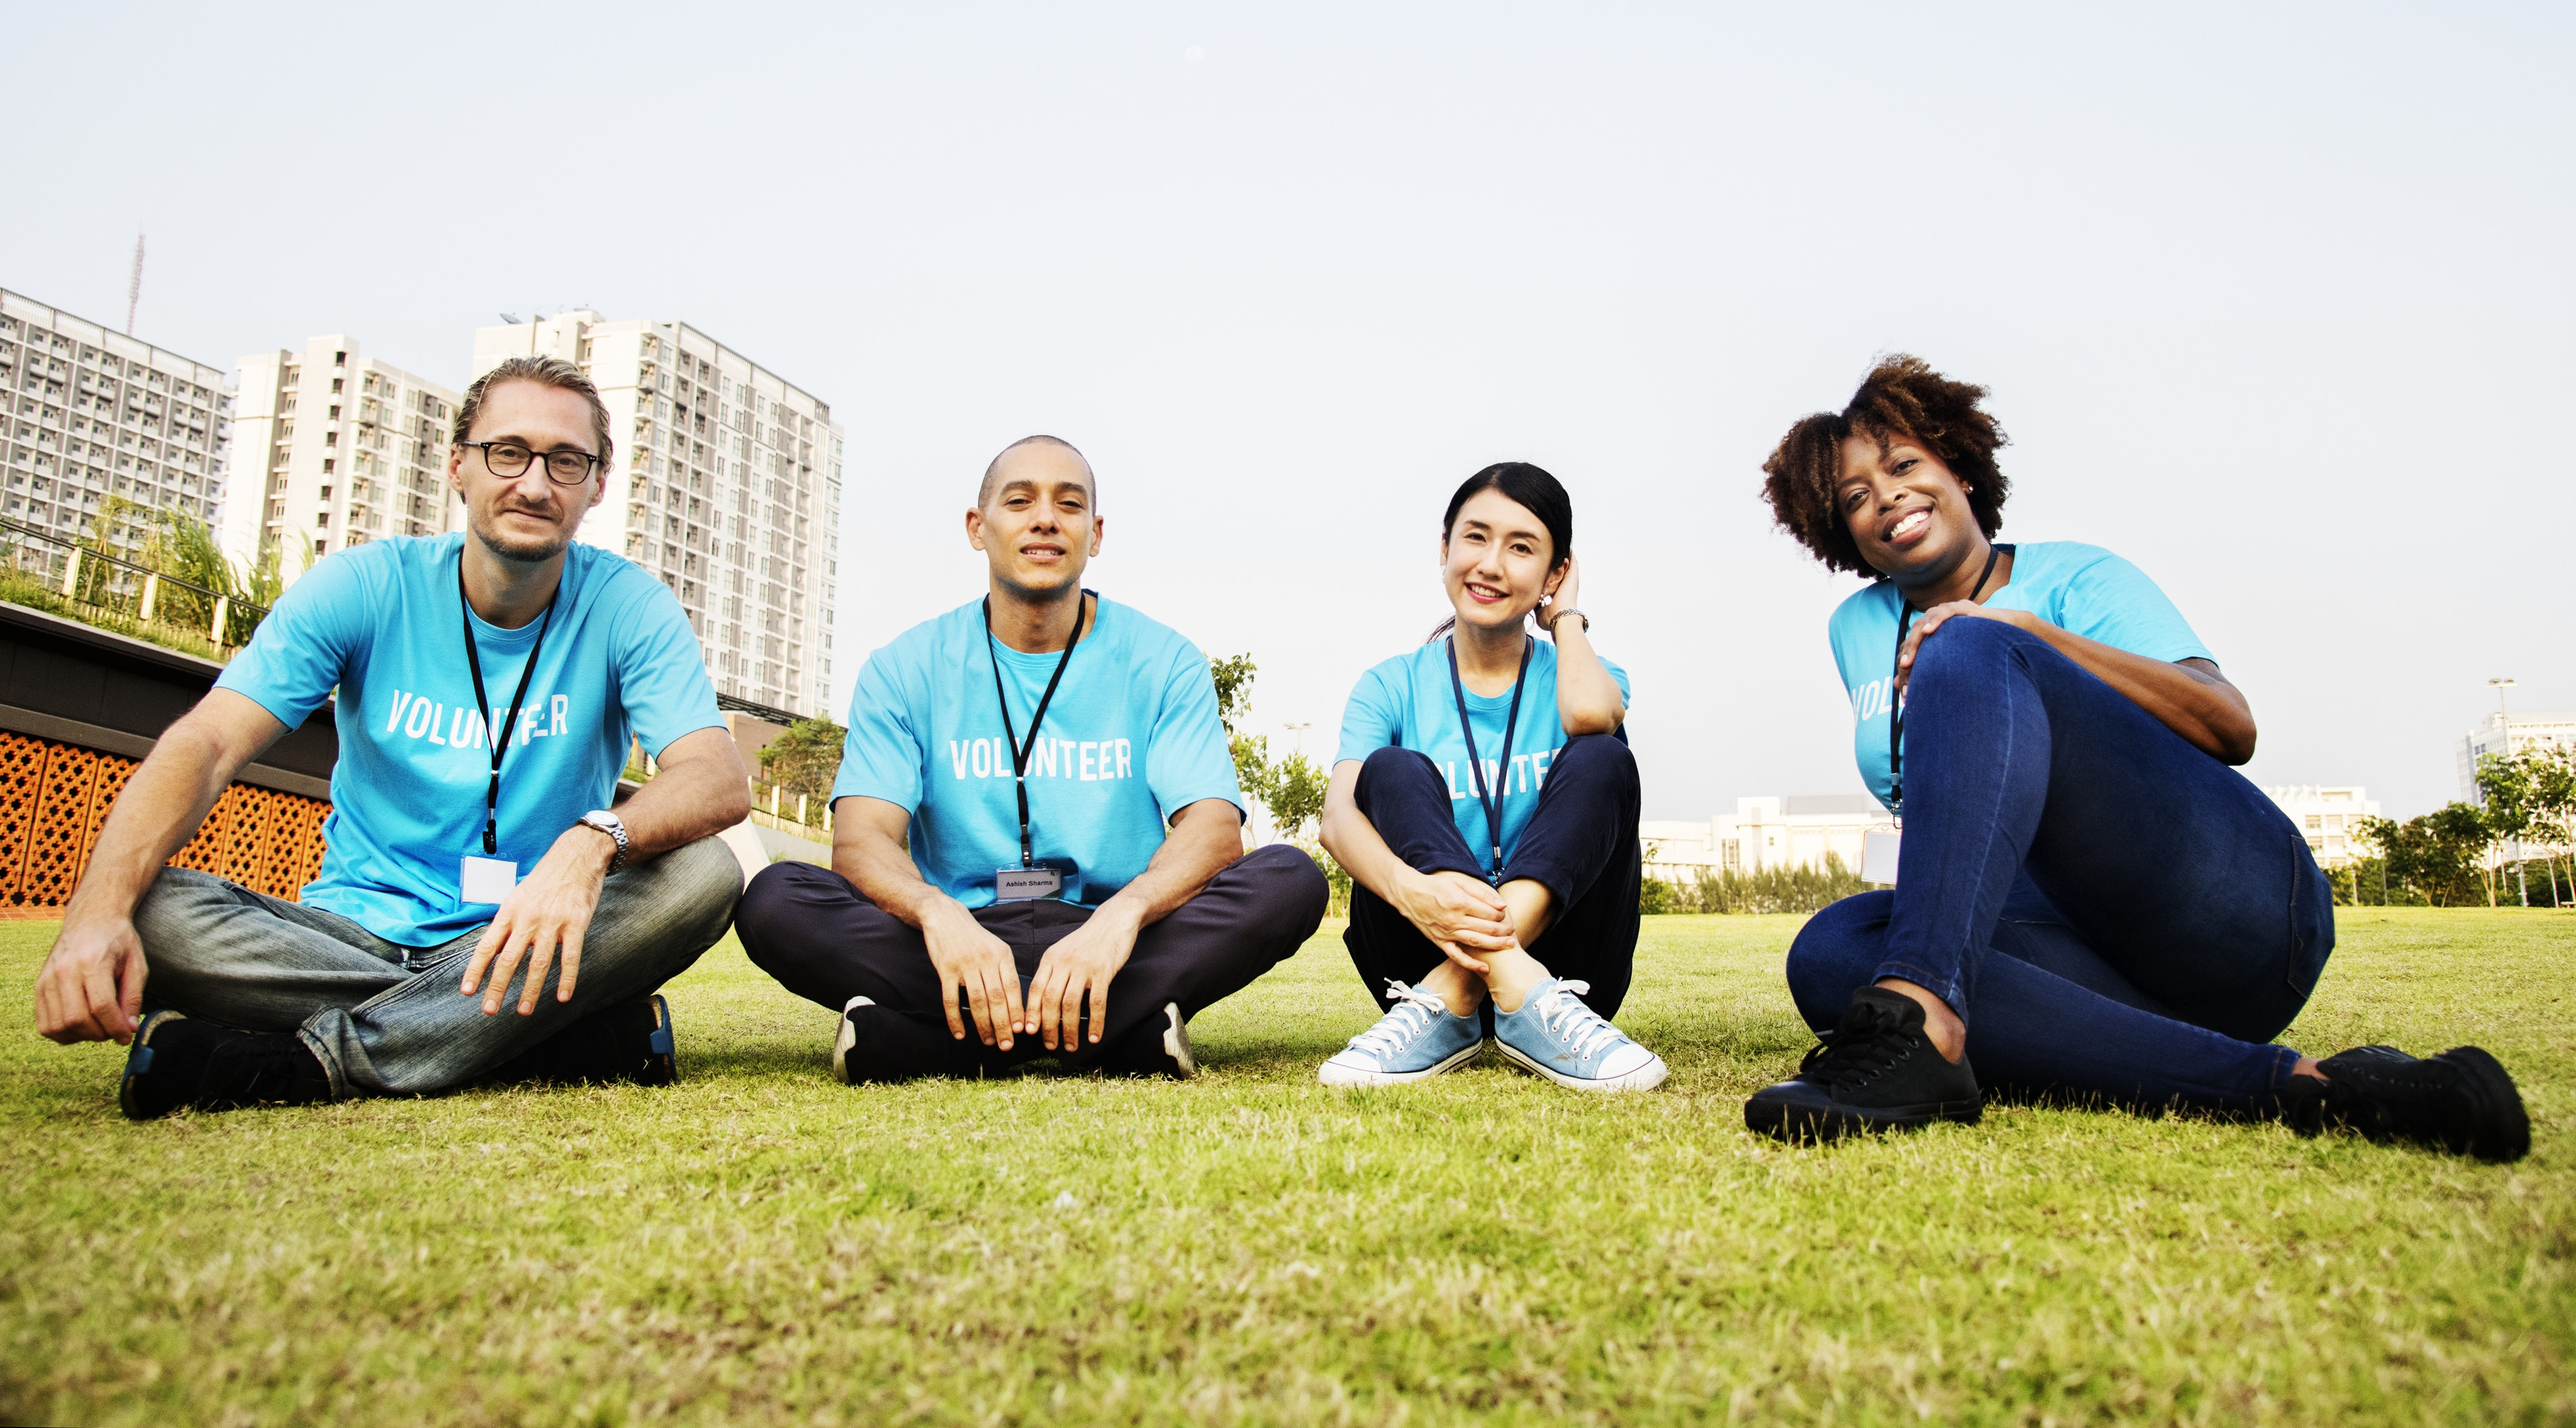 two men and two women sitting on green grass field during daytime